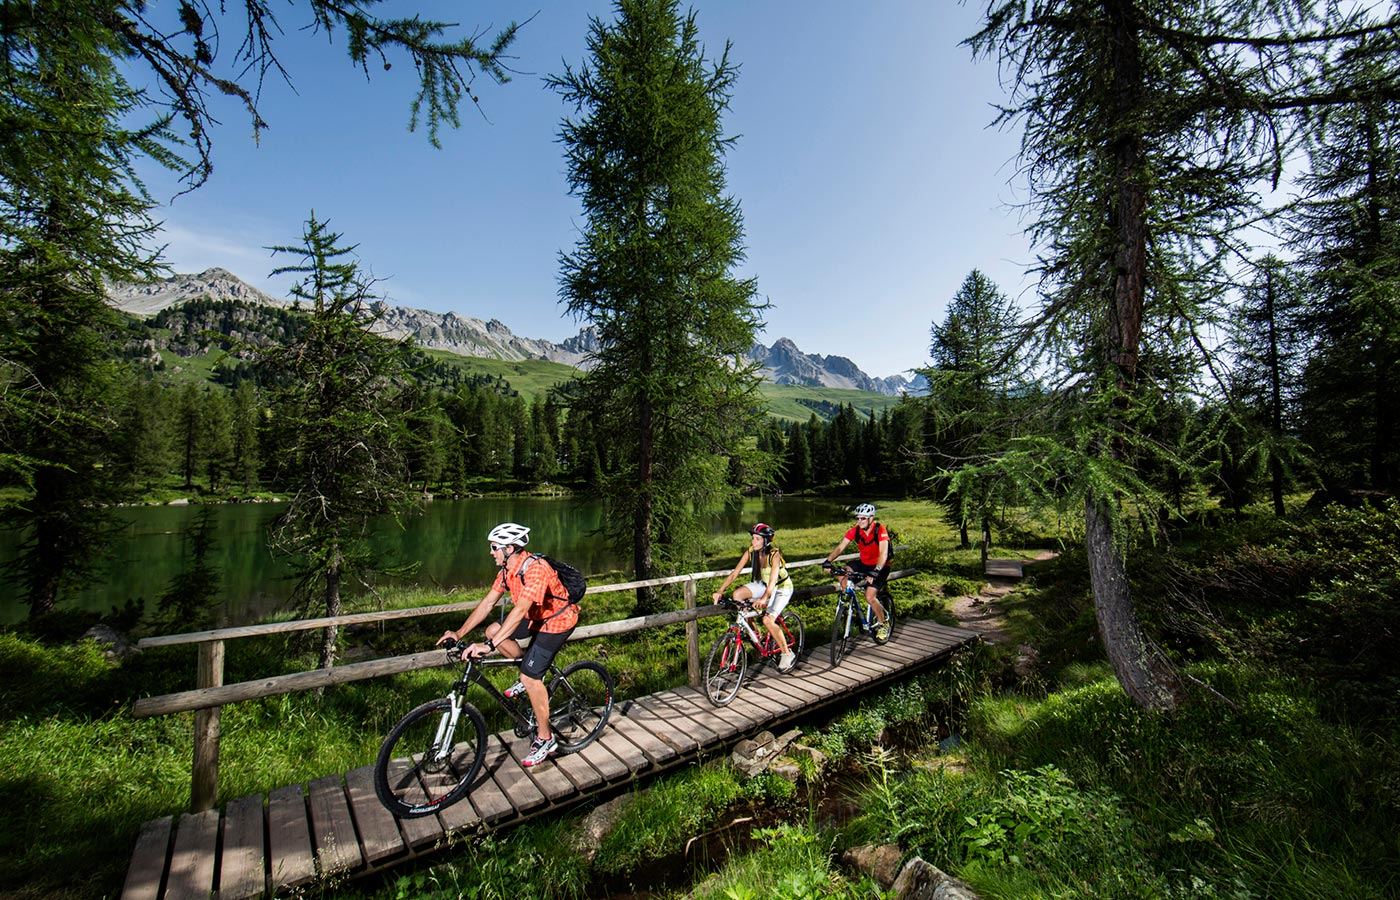 Cycling tourists enjoy a bike ride surrounded by nature